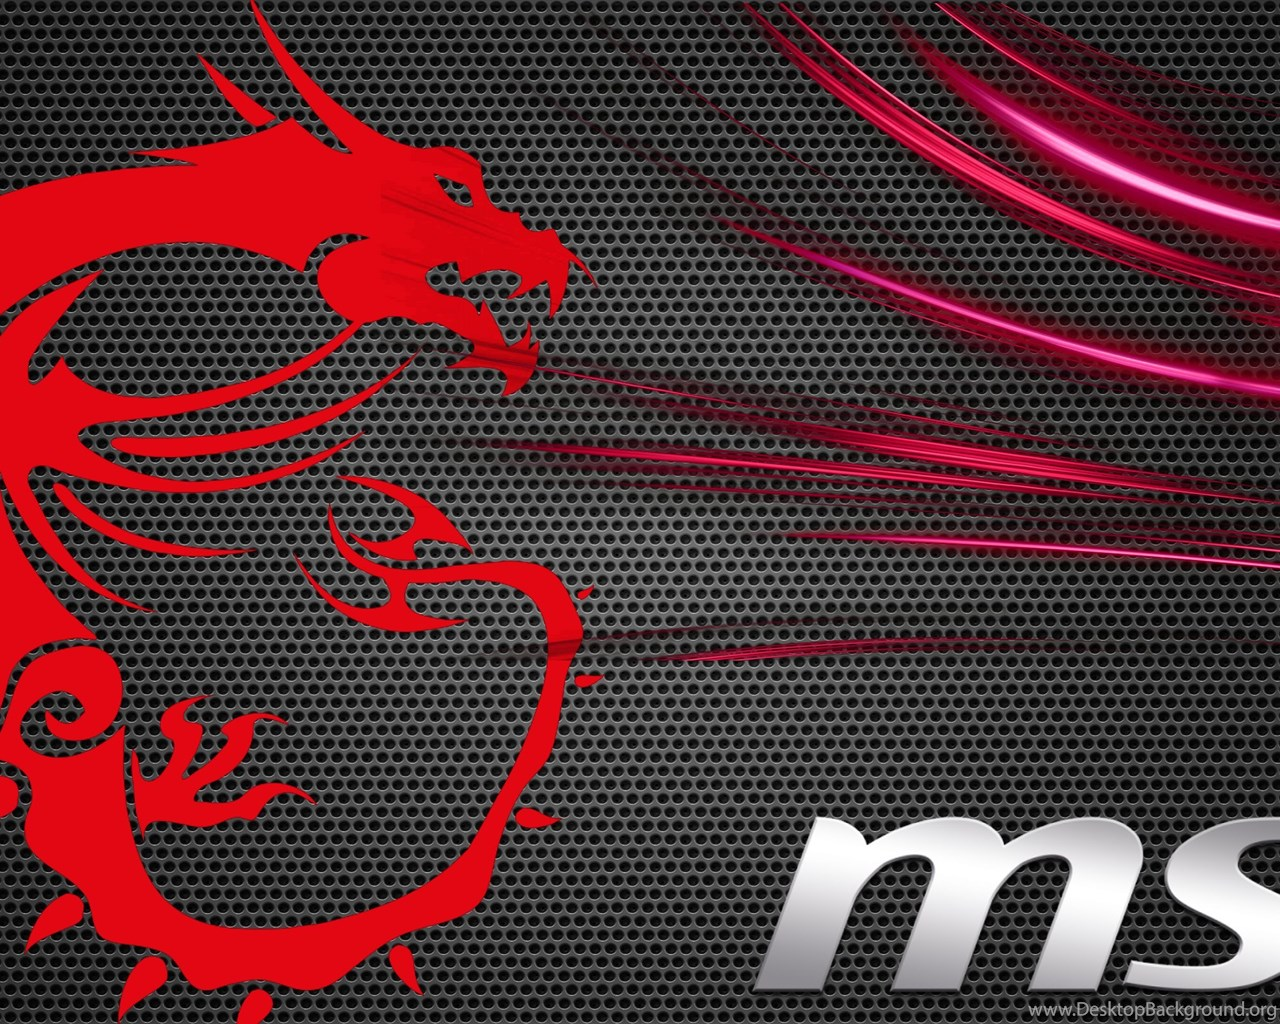 MSI Dragon Wallpapers By IKenny Walls On DeviantArt Desktop Background